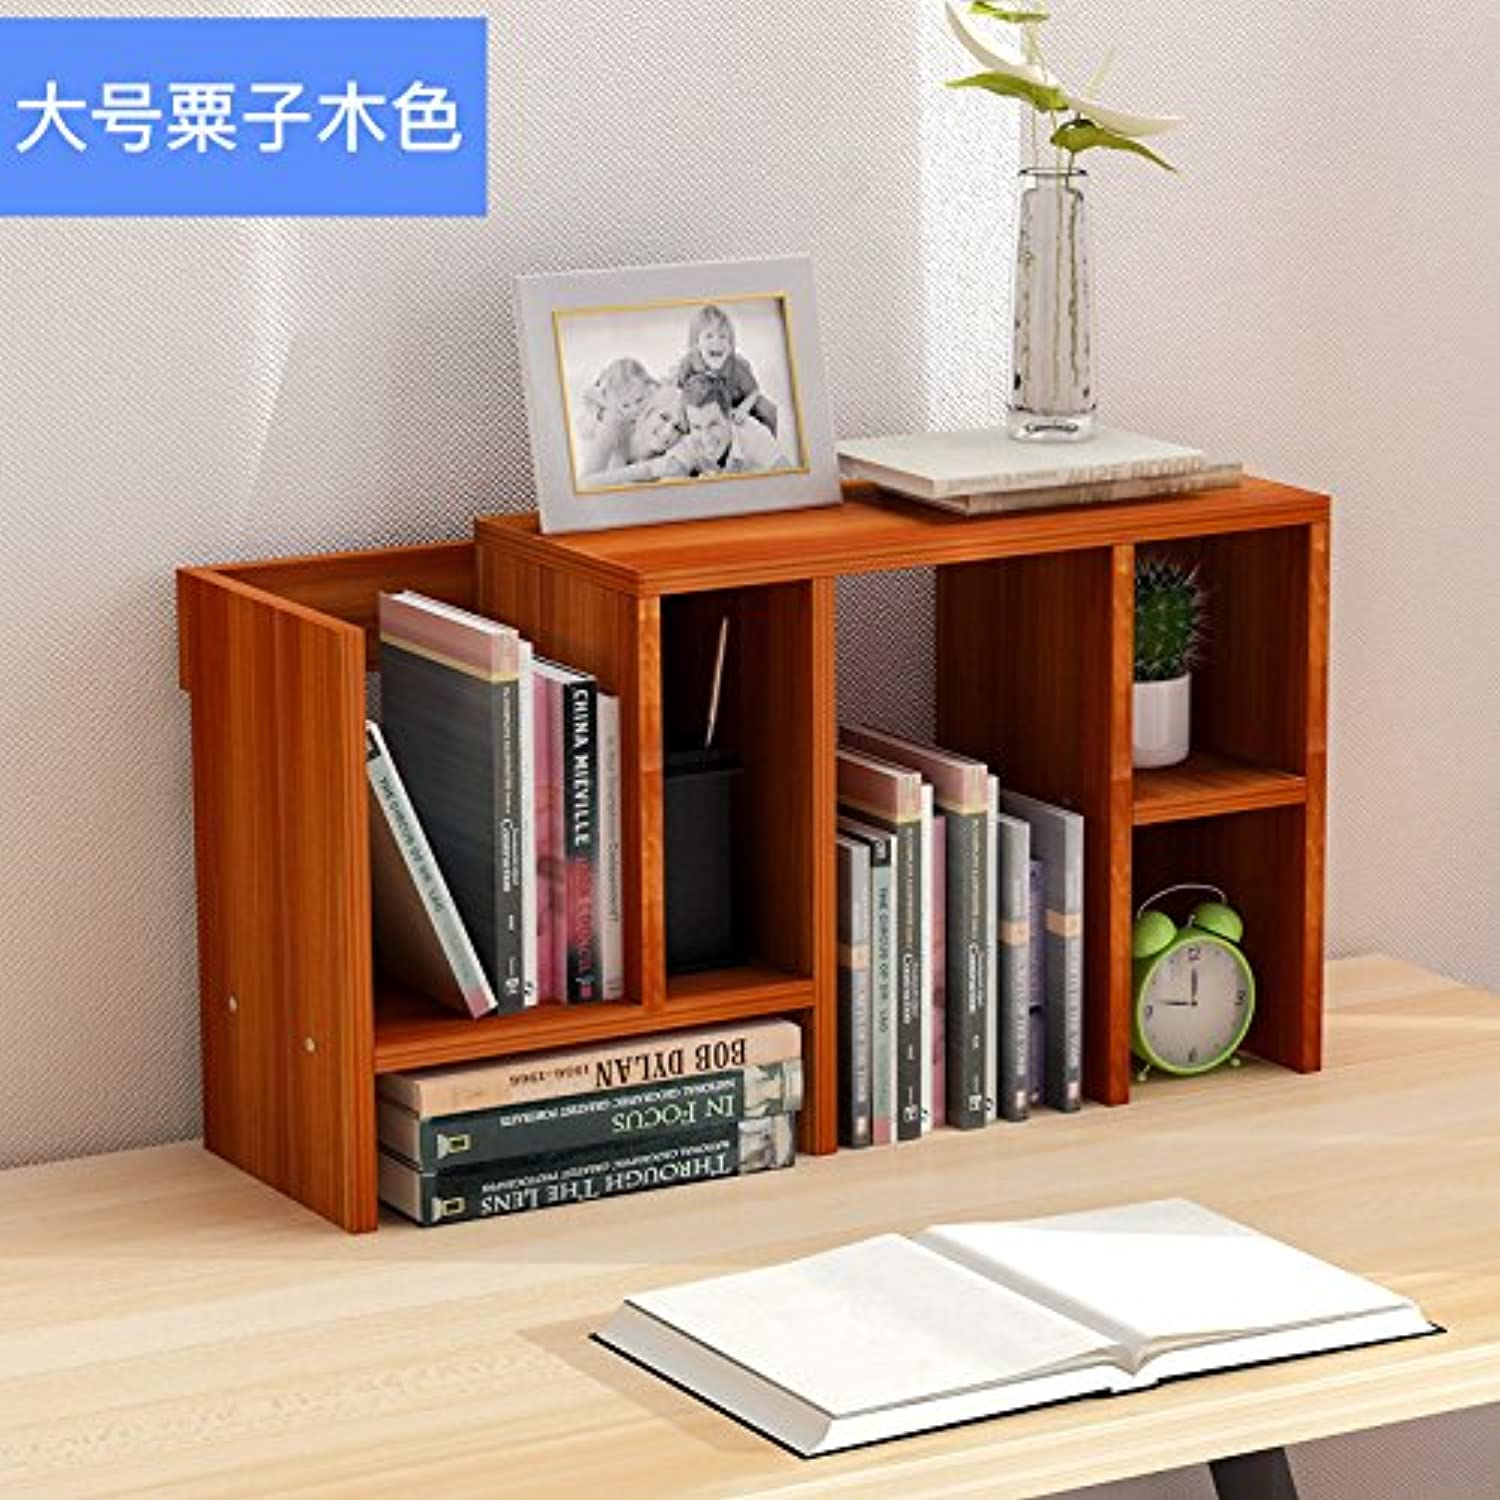 Creative bookshelves easy rack Small Office admitted rack scalable desktop bookcase , large chestnut wood color